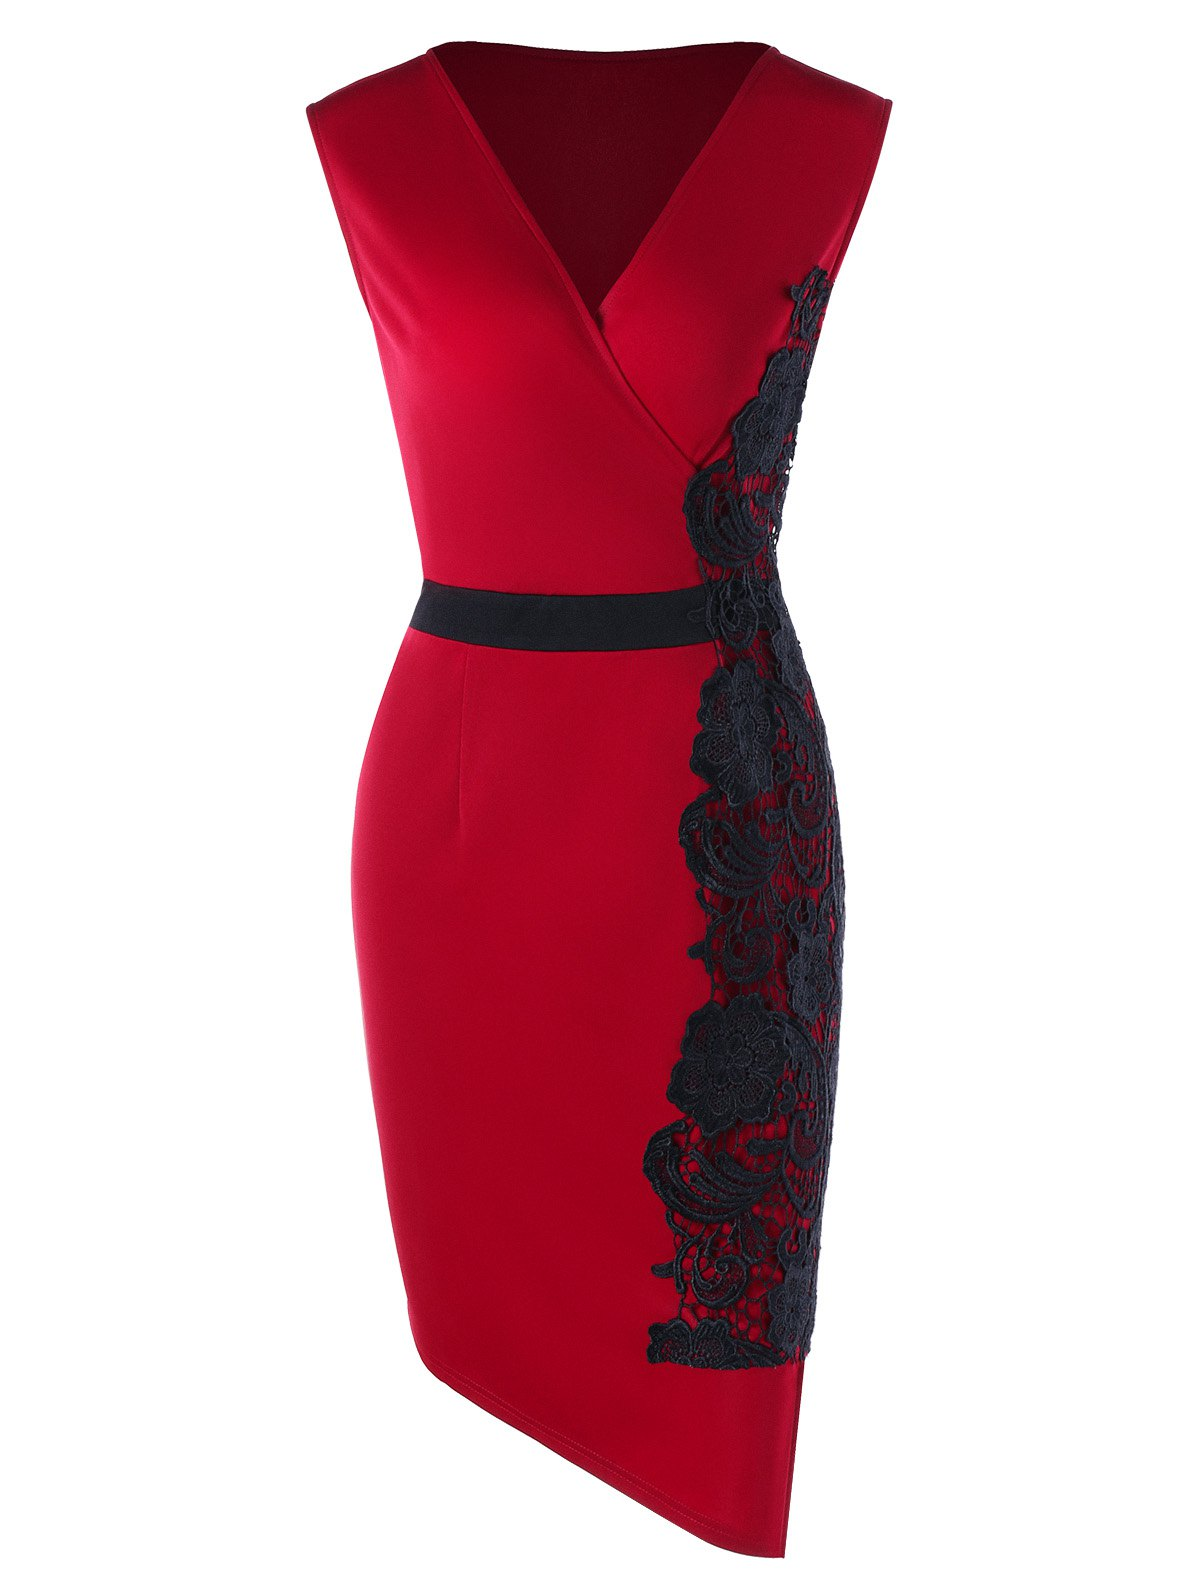 Plus Size Sleeveless Lace Trim Bodycon Dress - RED XL